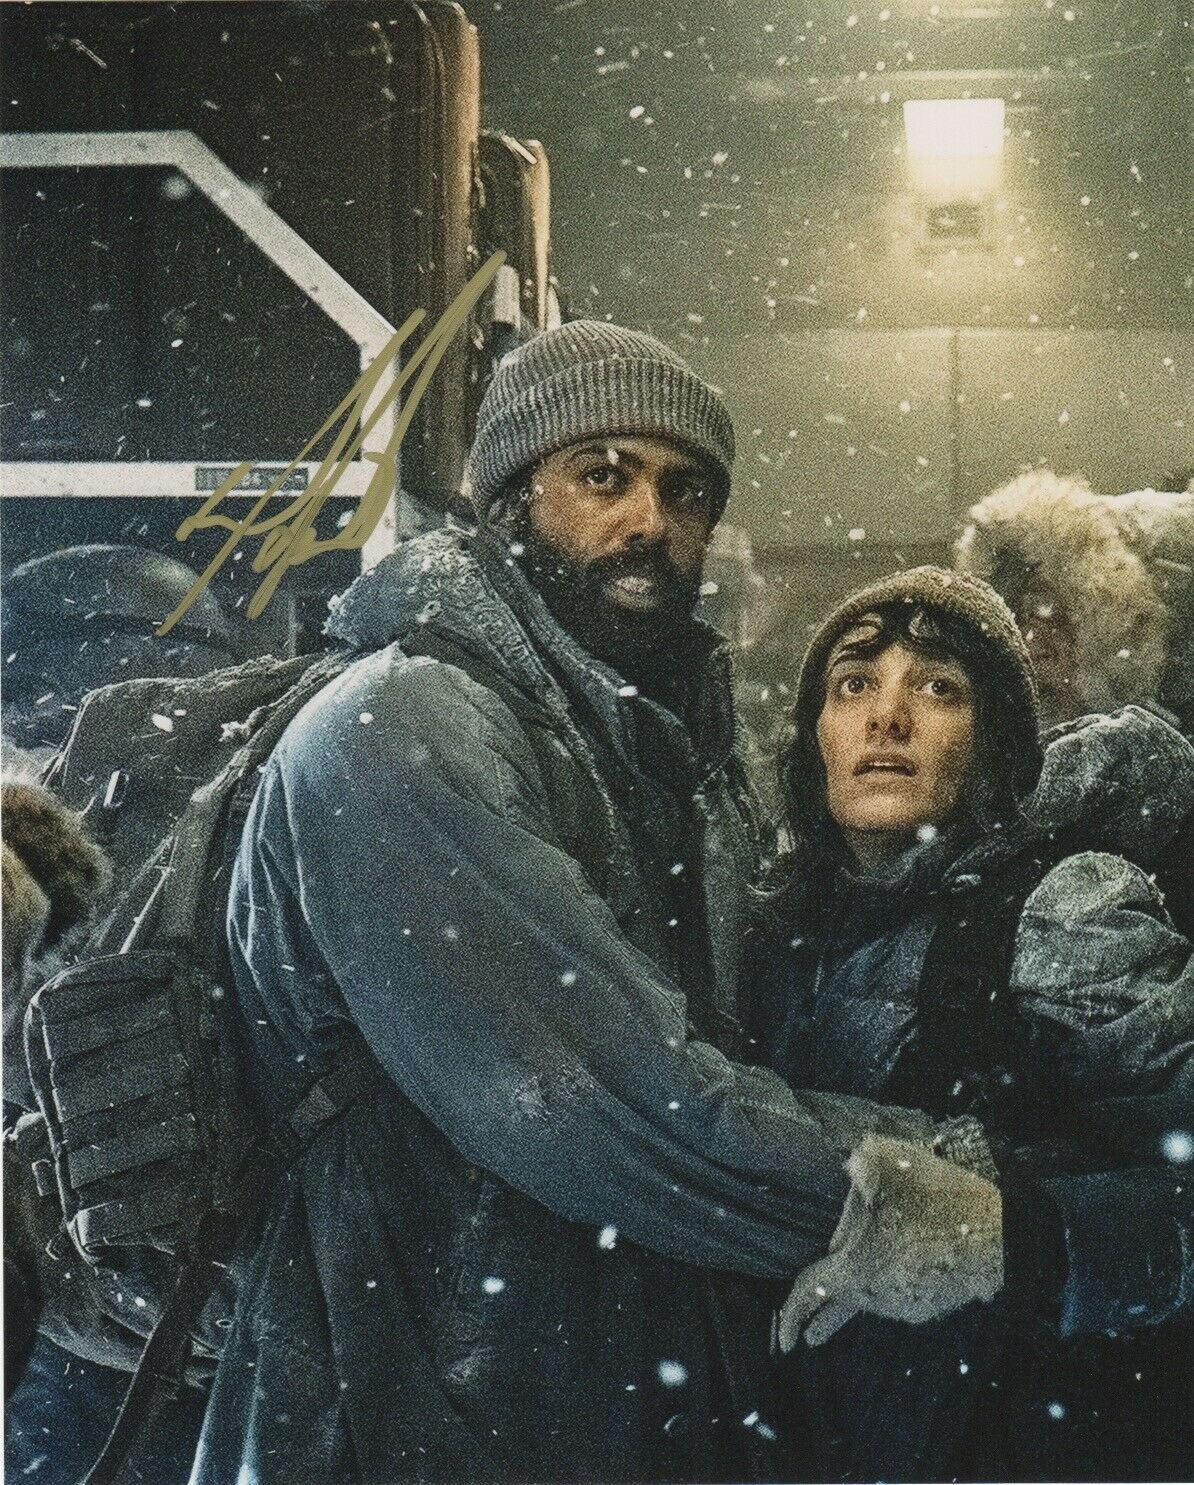 Daveed Diggs Snowpiercer Signed Autograph 8x10 Photo #5 - Outlaw Hobbies Authentic Autographs